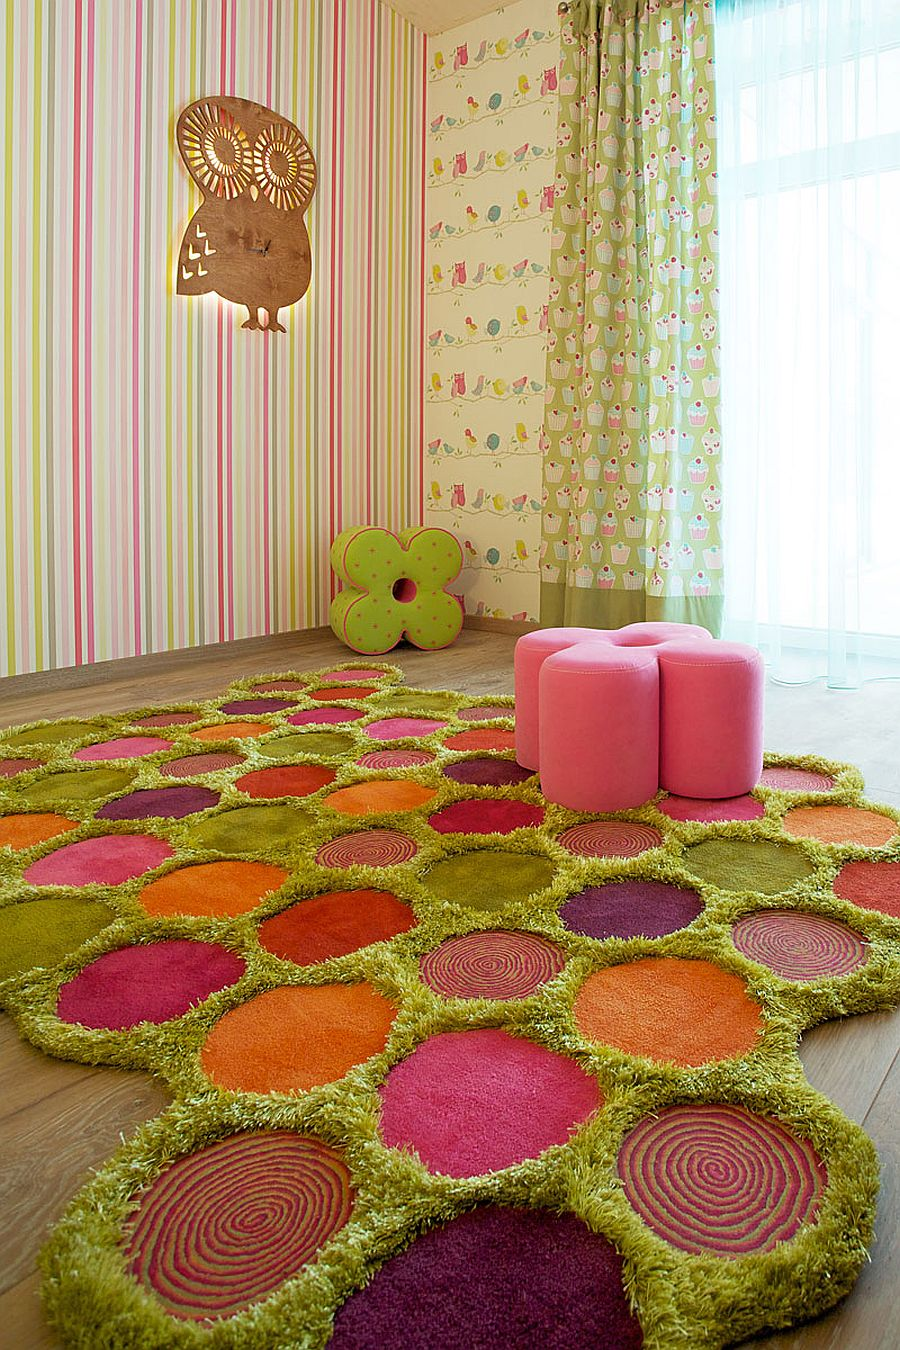 asymmetrical grand mx rug is a fun and practical addition to the kids room